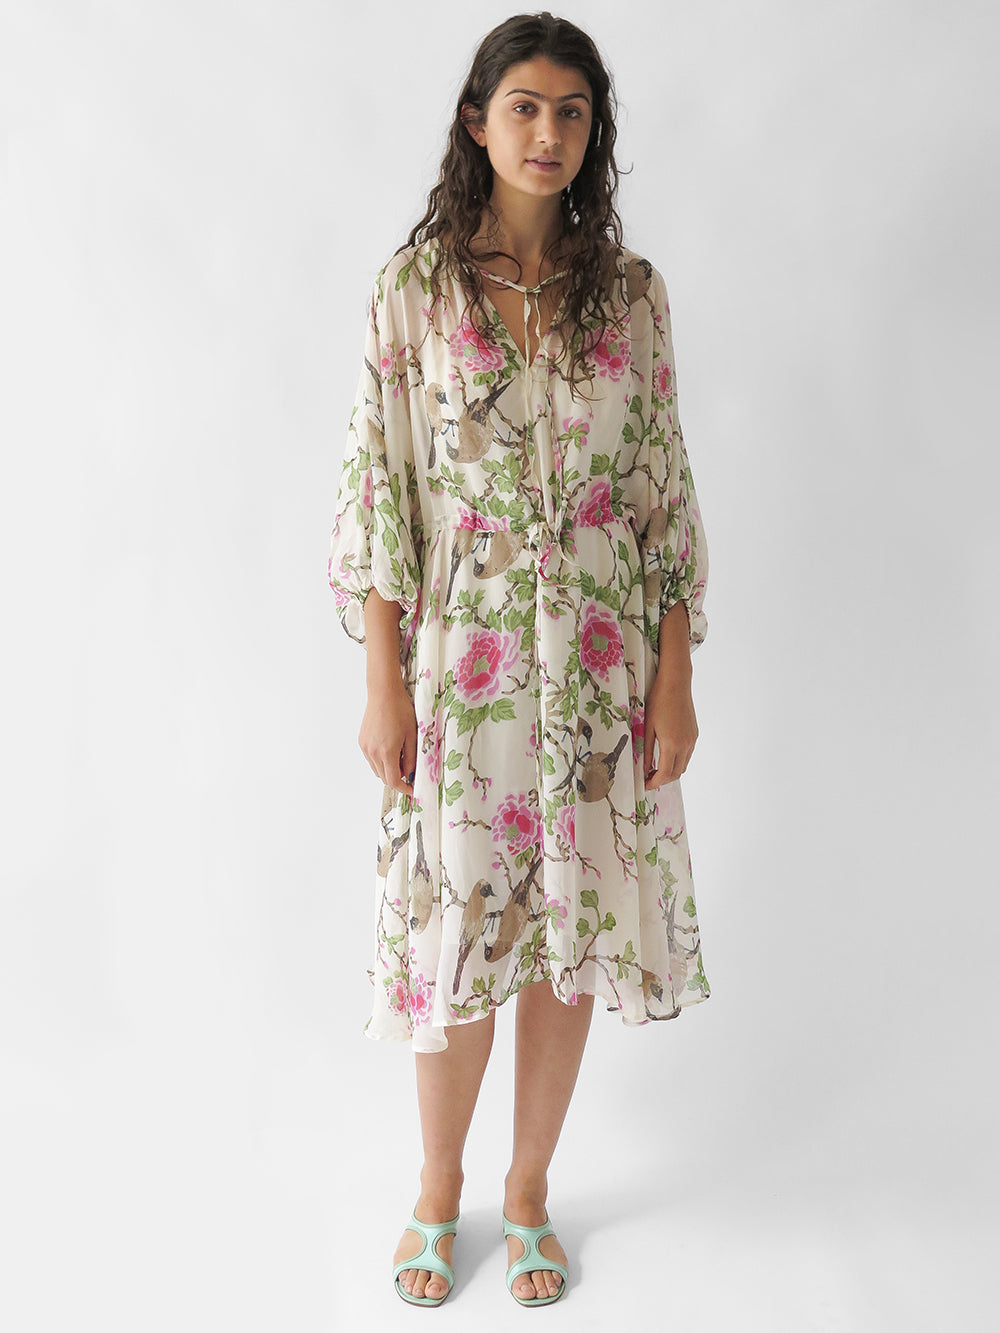 lovebird floriana dress in natural